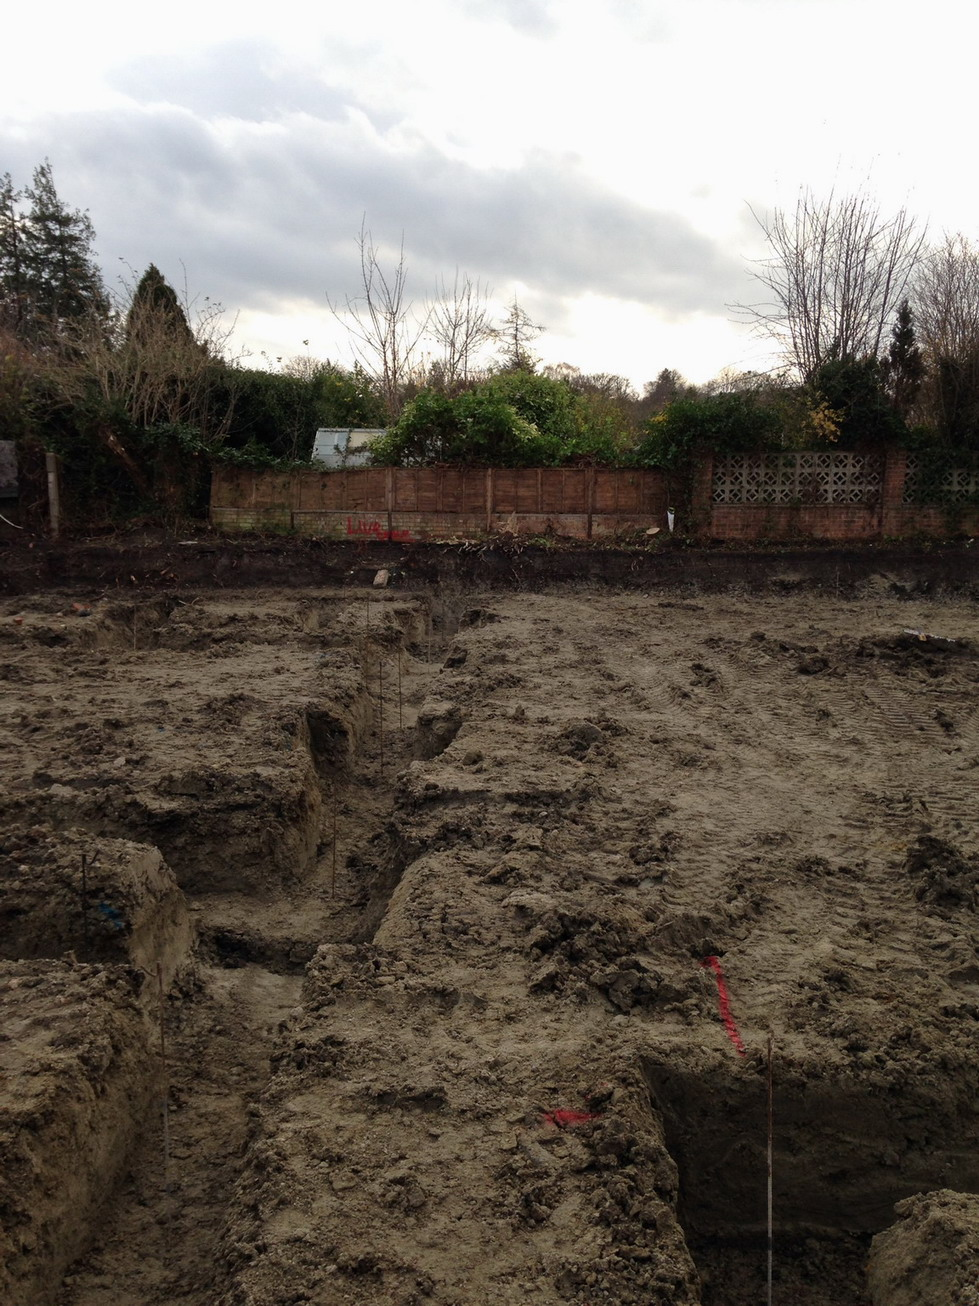 2 Dec 2015 Muddy trenches